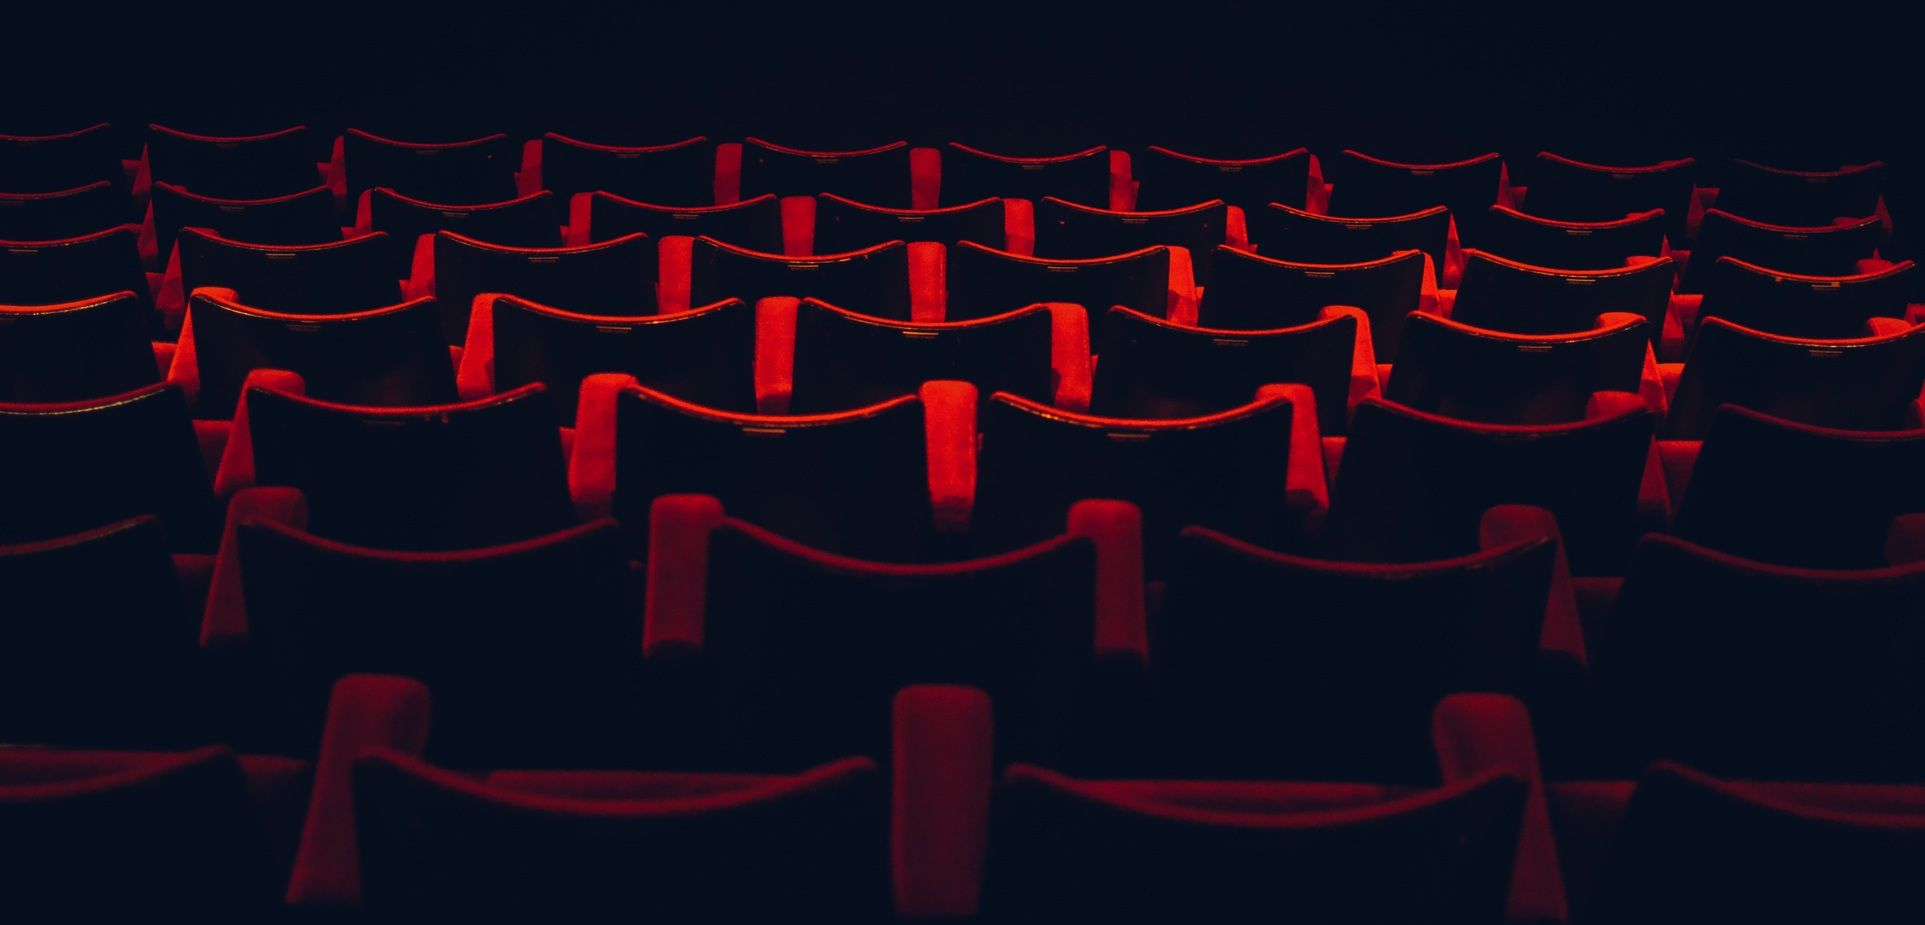 Image of red theater seats